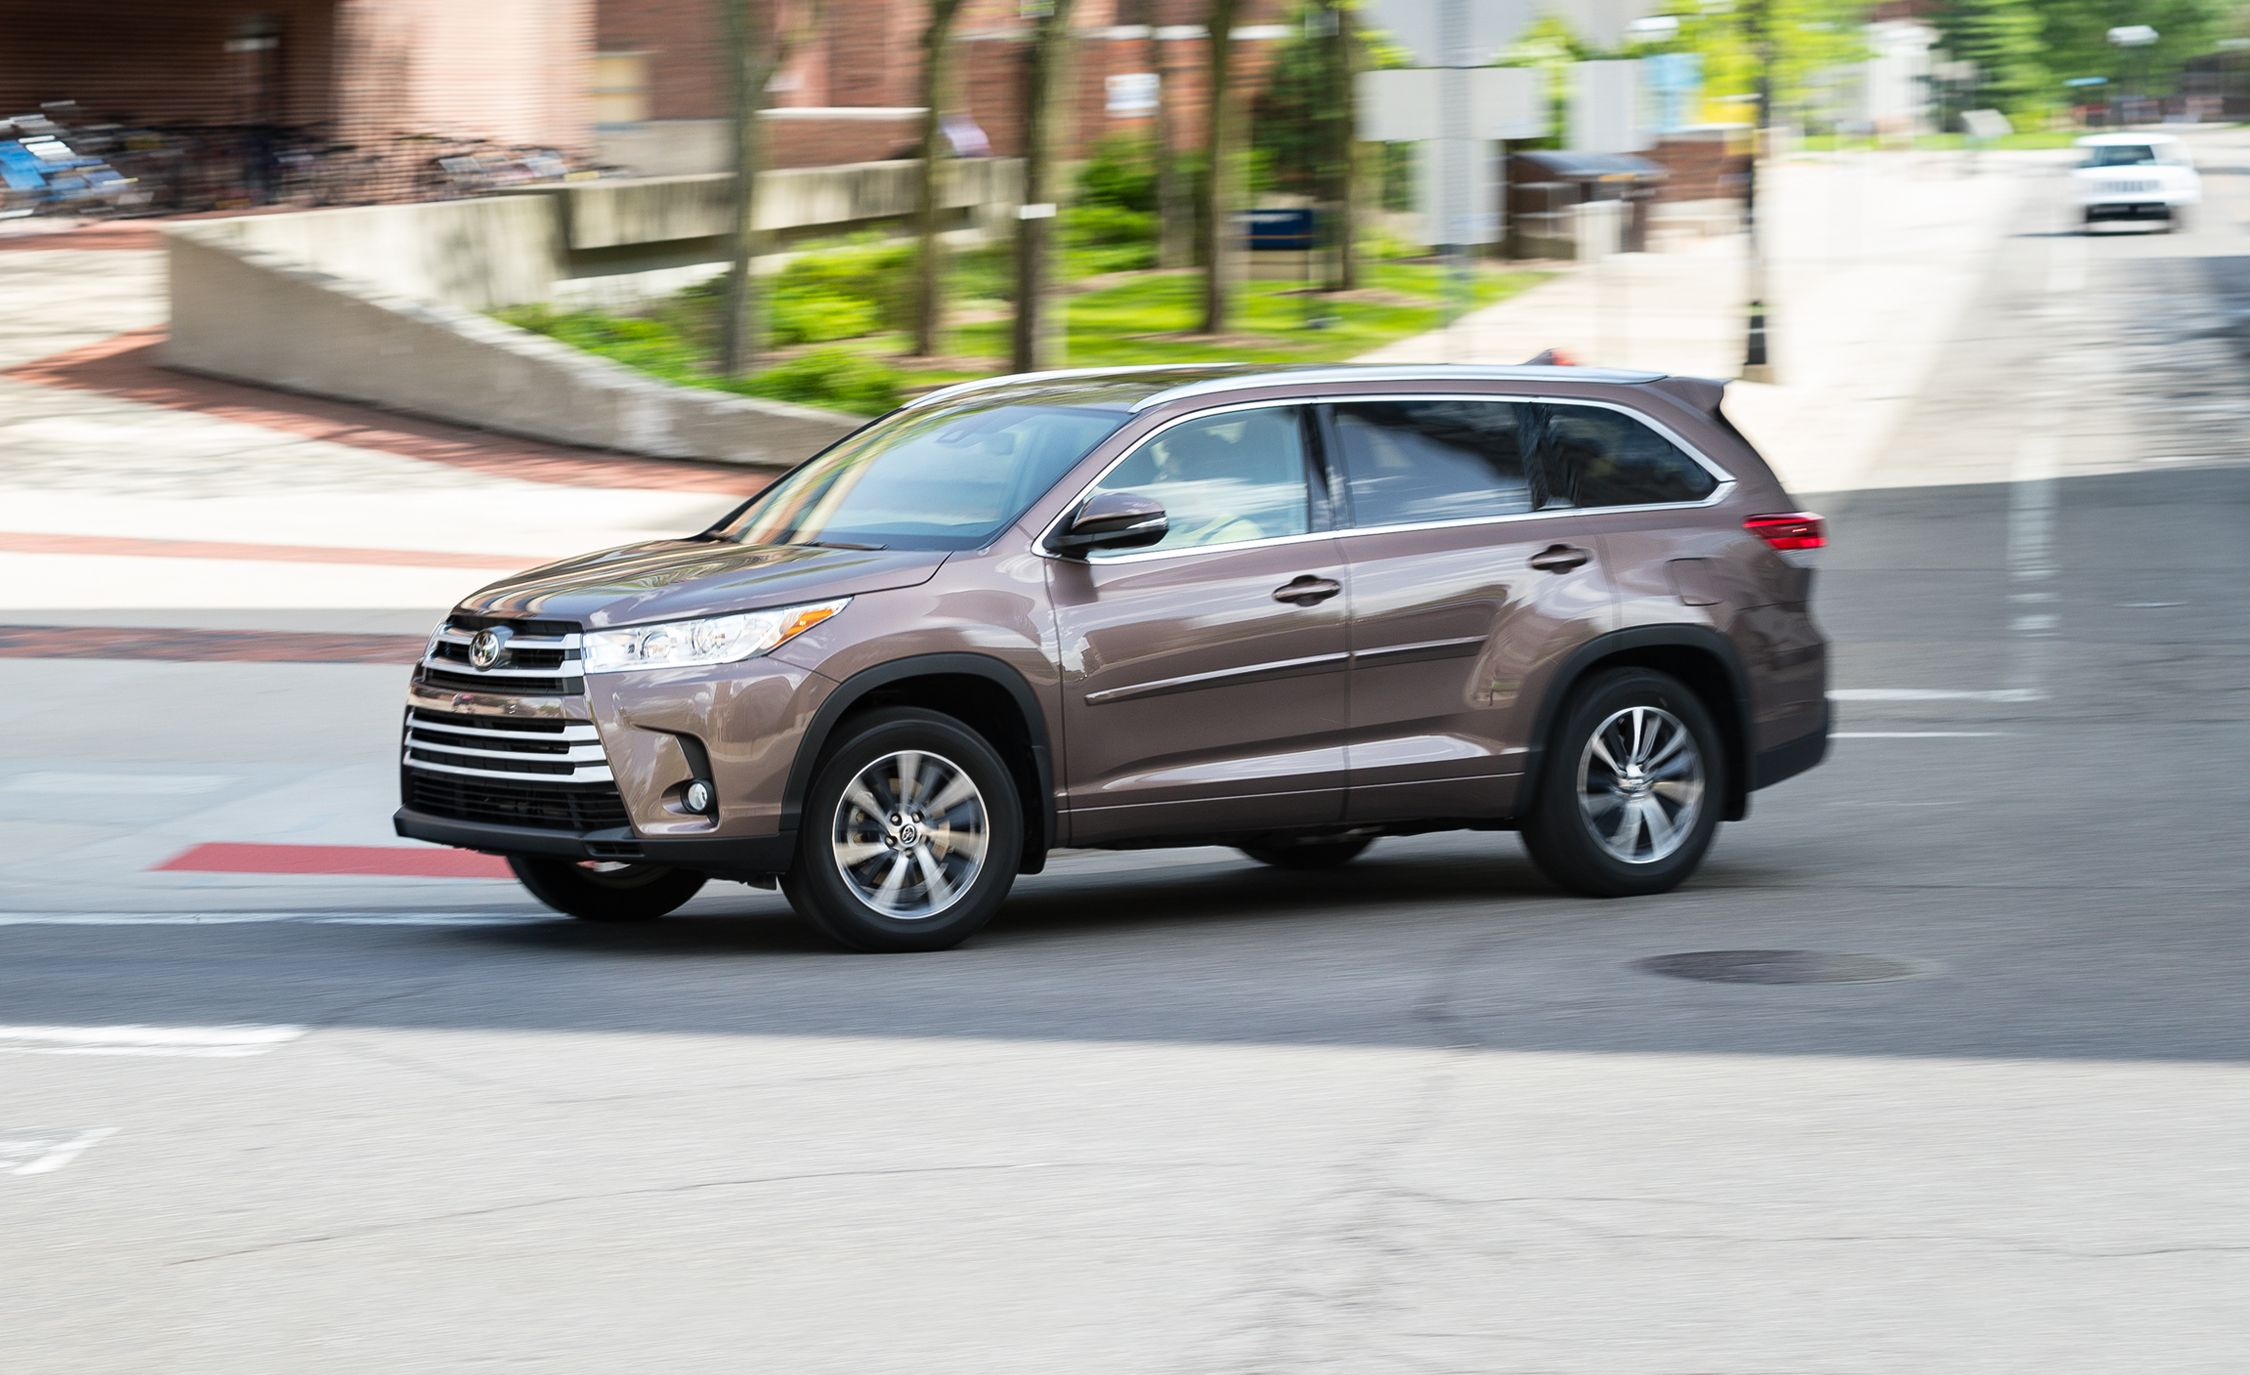 2019 Highlander Hybrid >> 2018 Toyota Highlander | In-Depth Model Review | Car and Driver